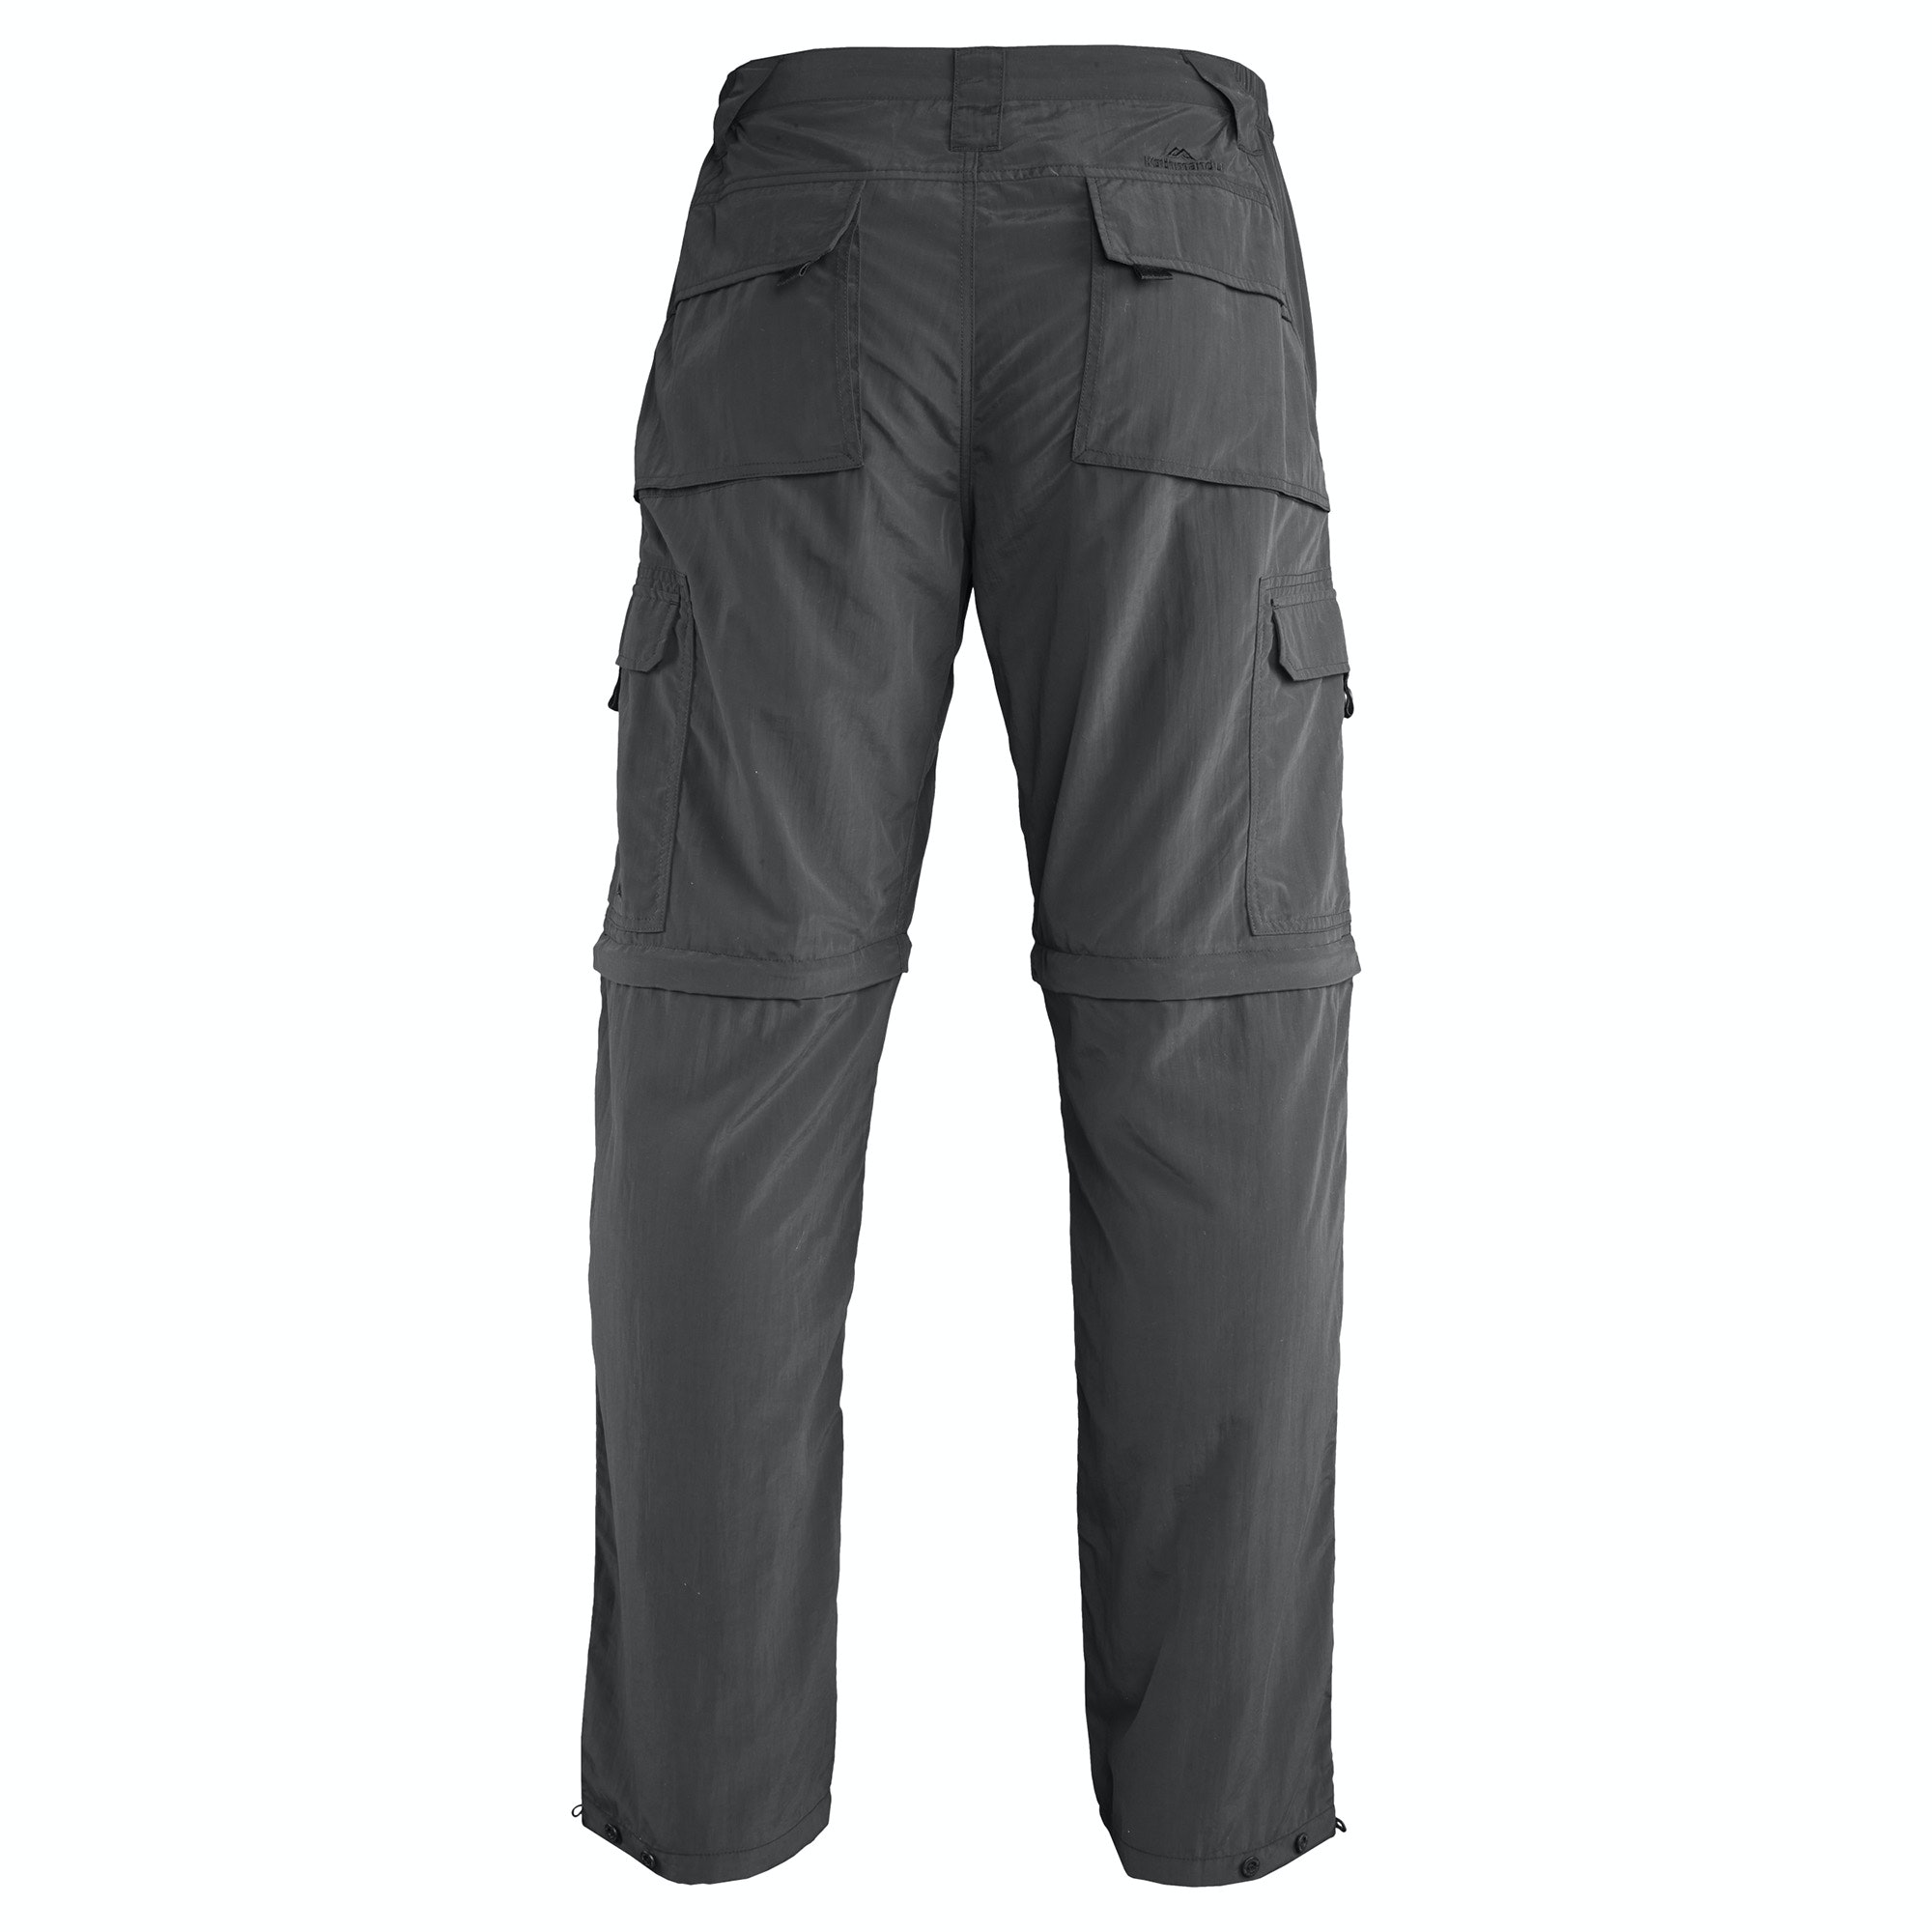 Men's Pants - New Zealand. With a broad selection on offer, our directional edit of men's pants showcases the very latest styles. From tailored and casual cuts to chinos in an array of colours and fabrics, THE ICONIC stocks a premium collection of men's pants, including sports pants and leggings for your athletic needs.